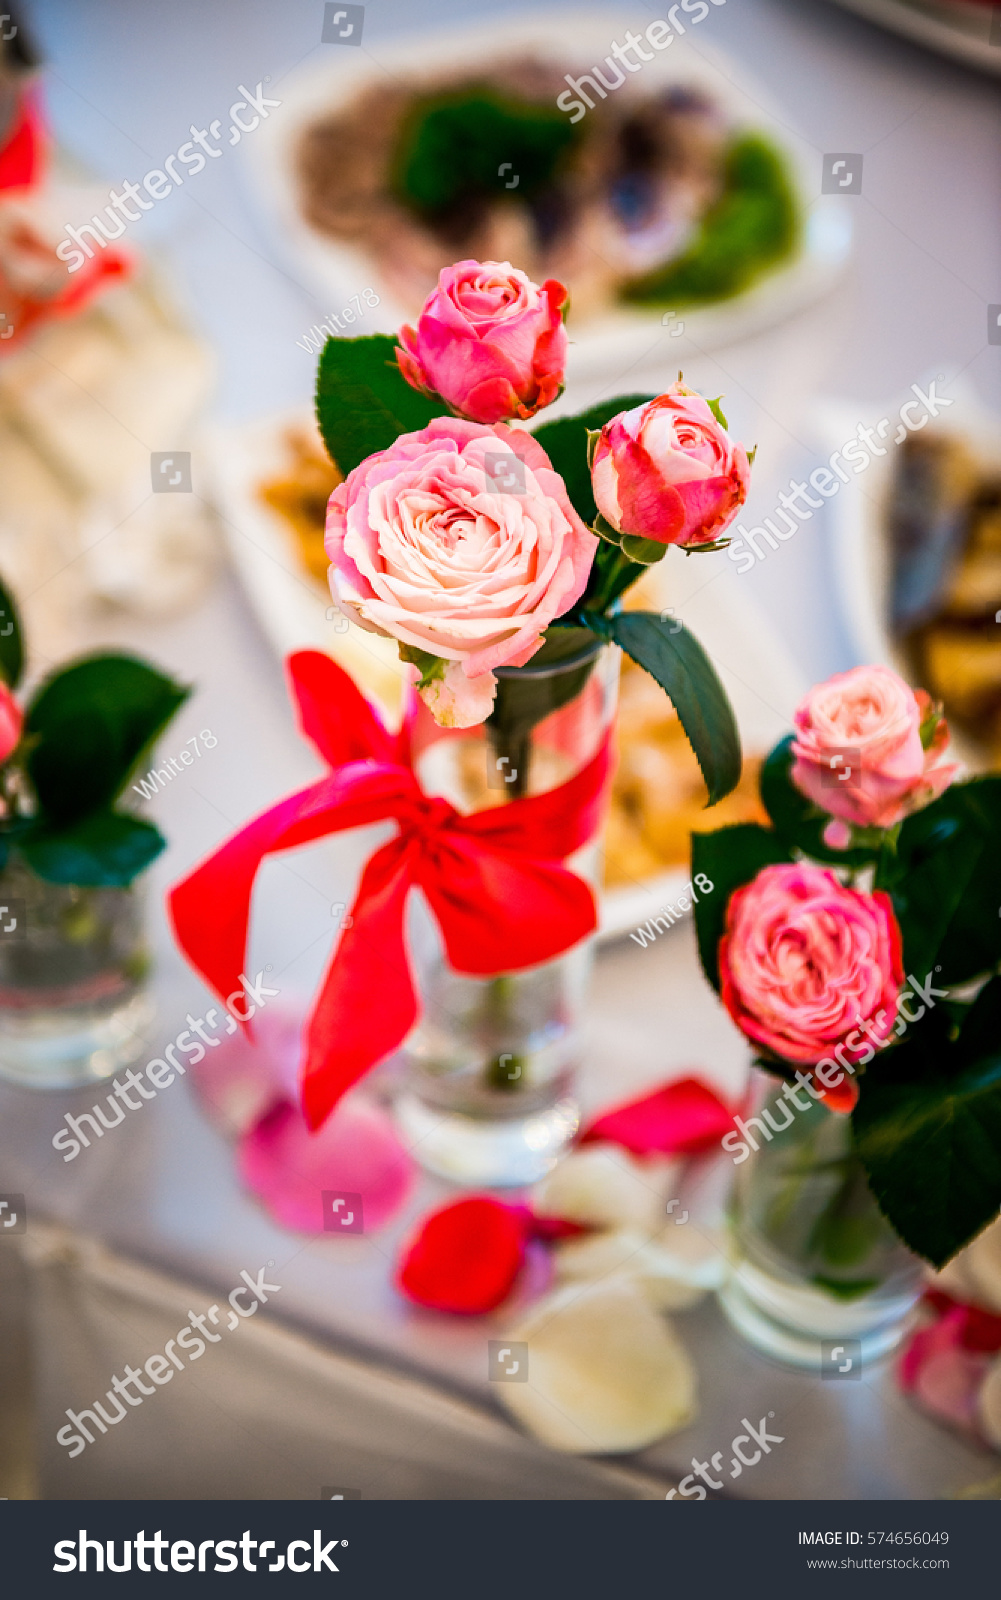 Wedding bouquet of different flowers for the holiday ez canvas id 574656049 izmirmasajfo